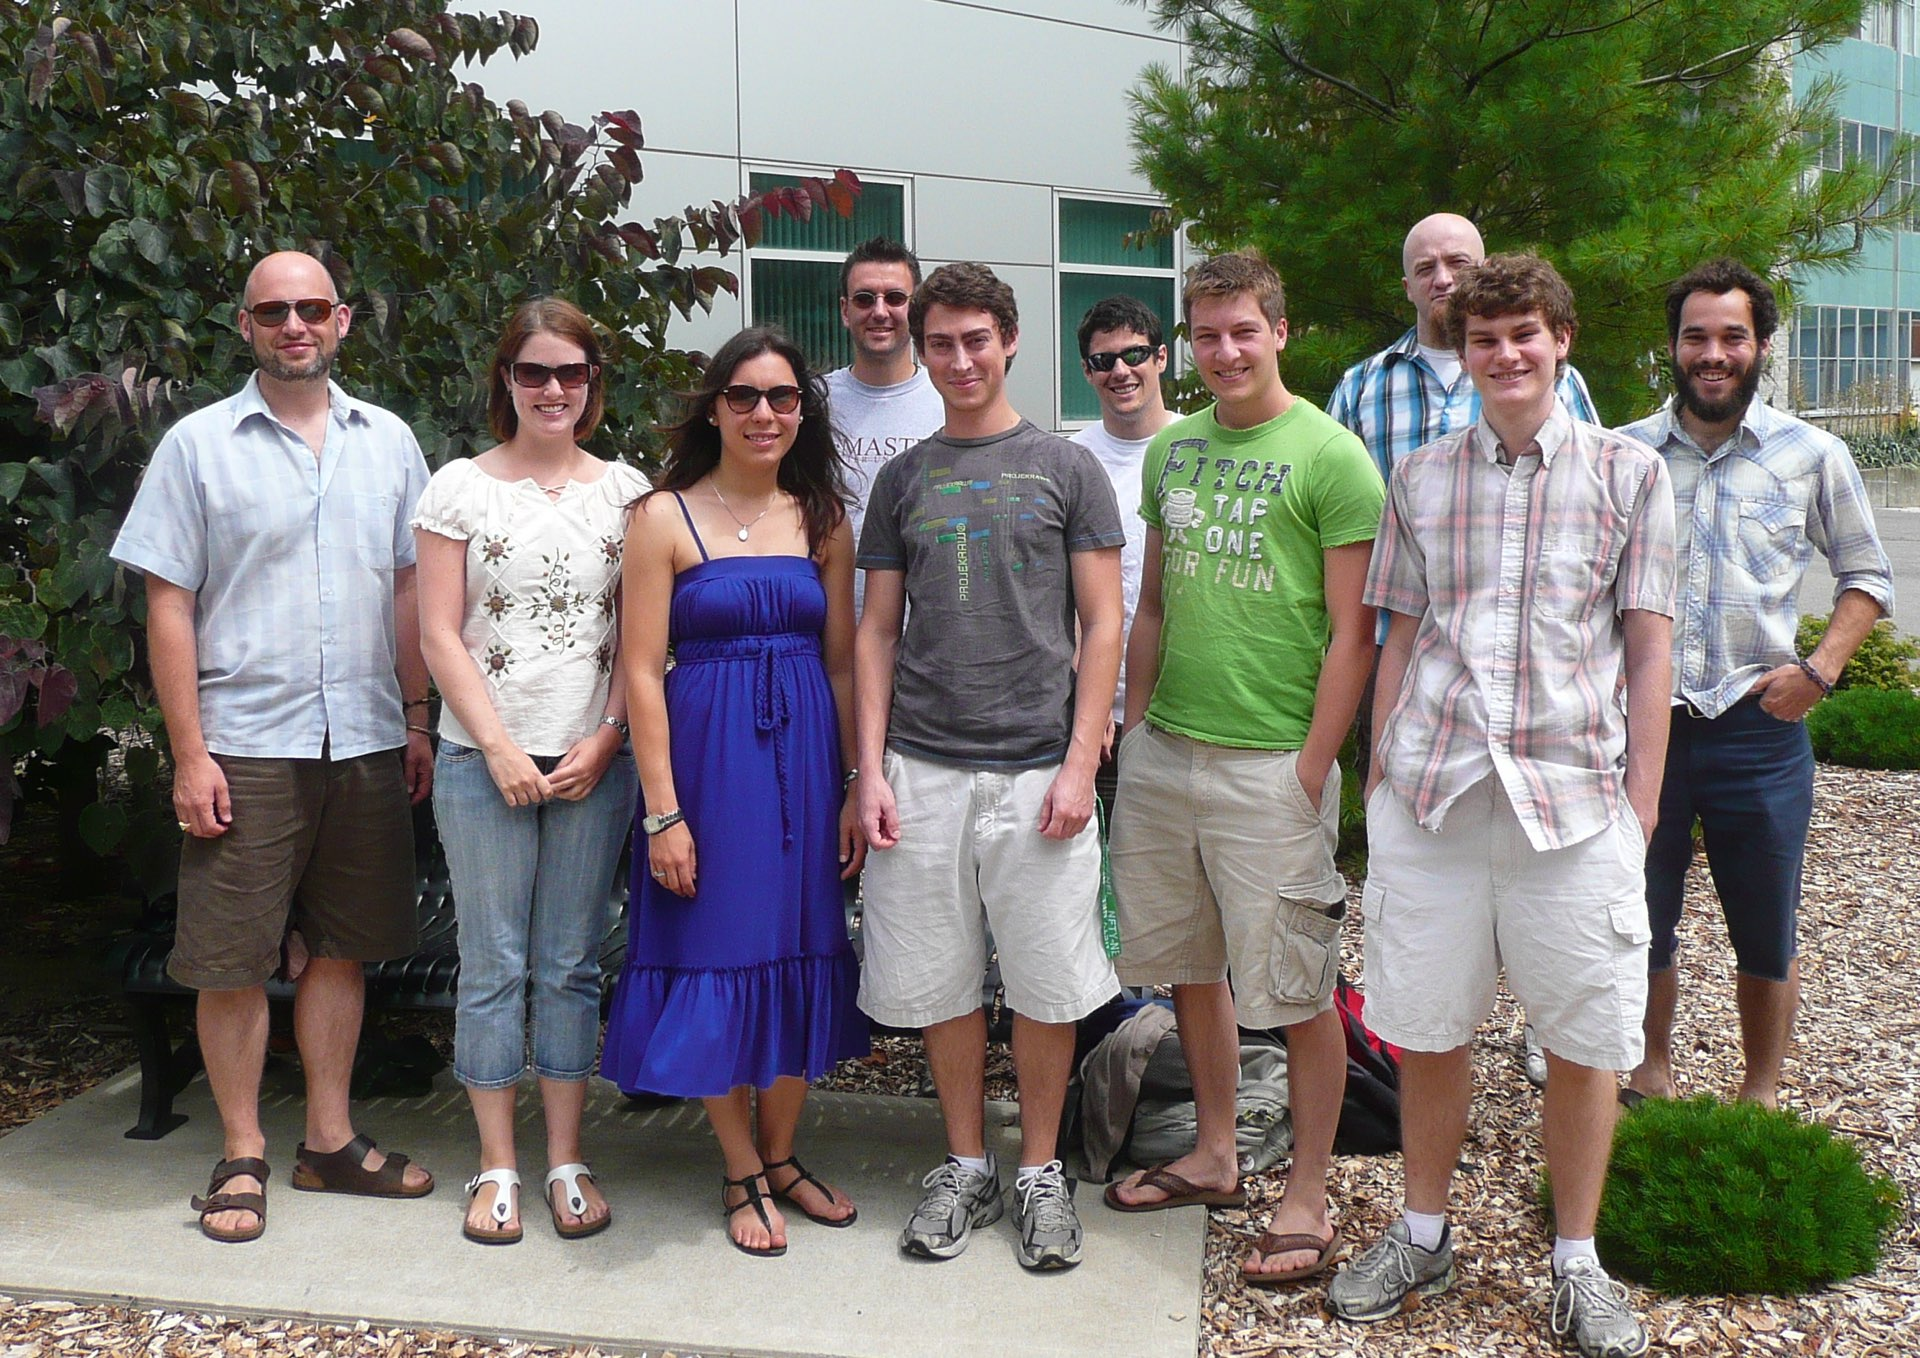 Group, Summer 2011